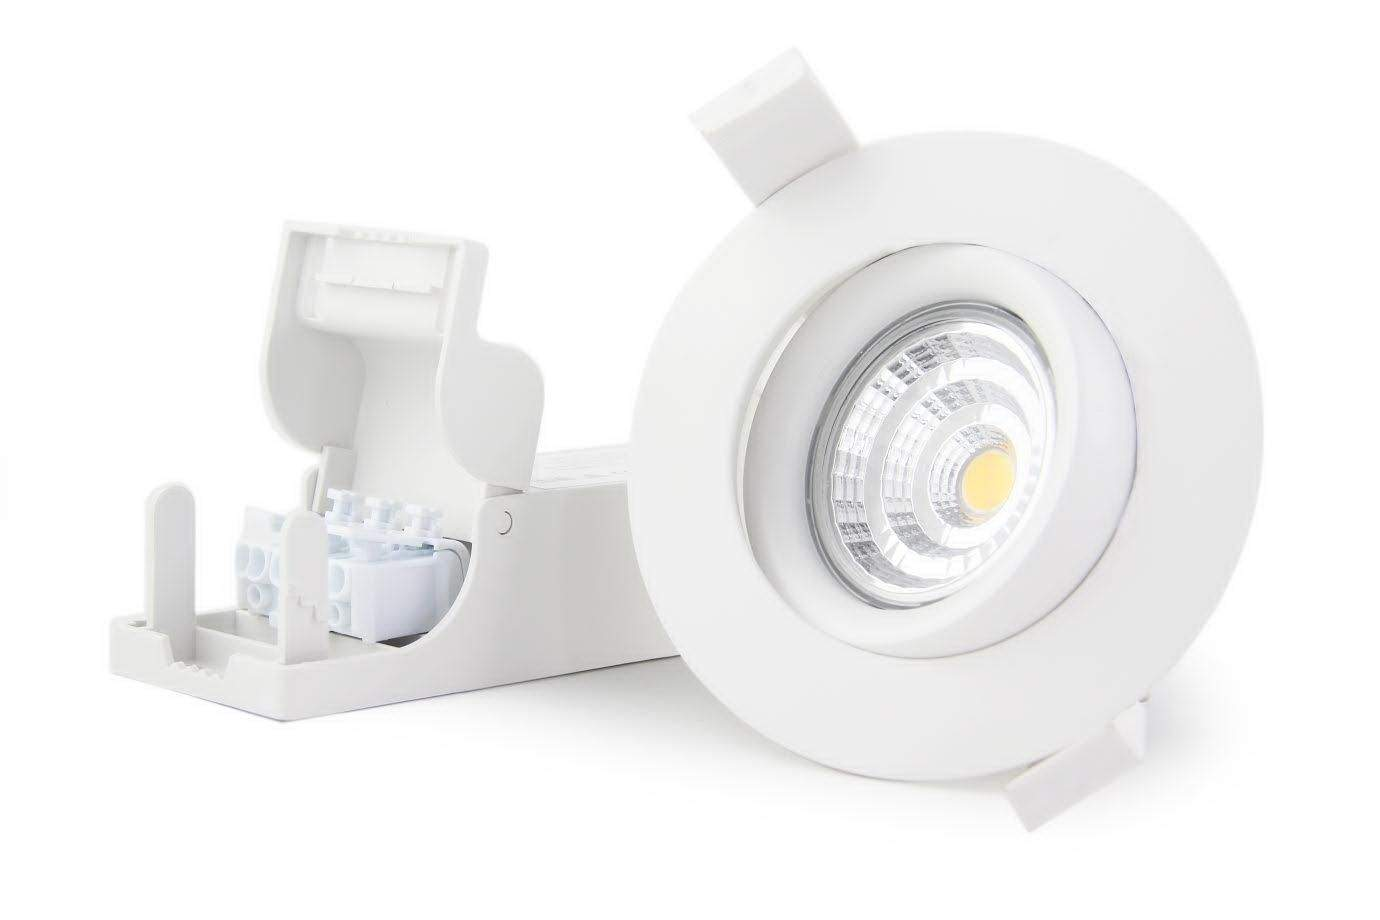 LED downlight LED downlight PROLUMEN Smart Plus 9WF DIM white round 9W 700lm CRI90 45° IP44 3000K warm white